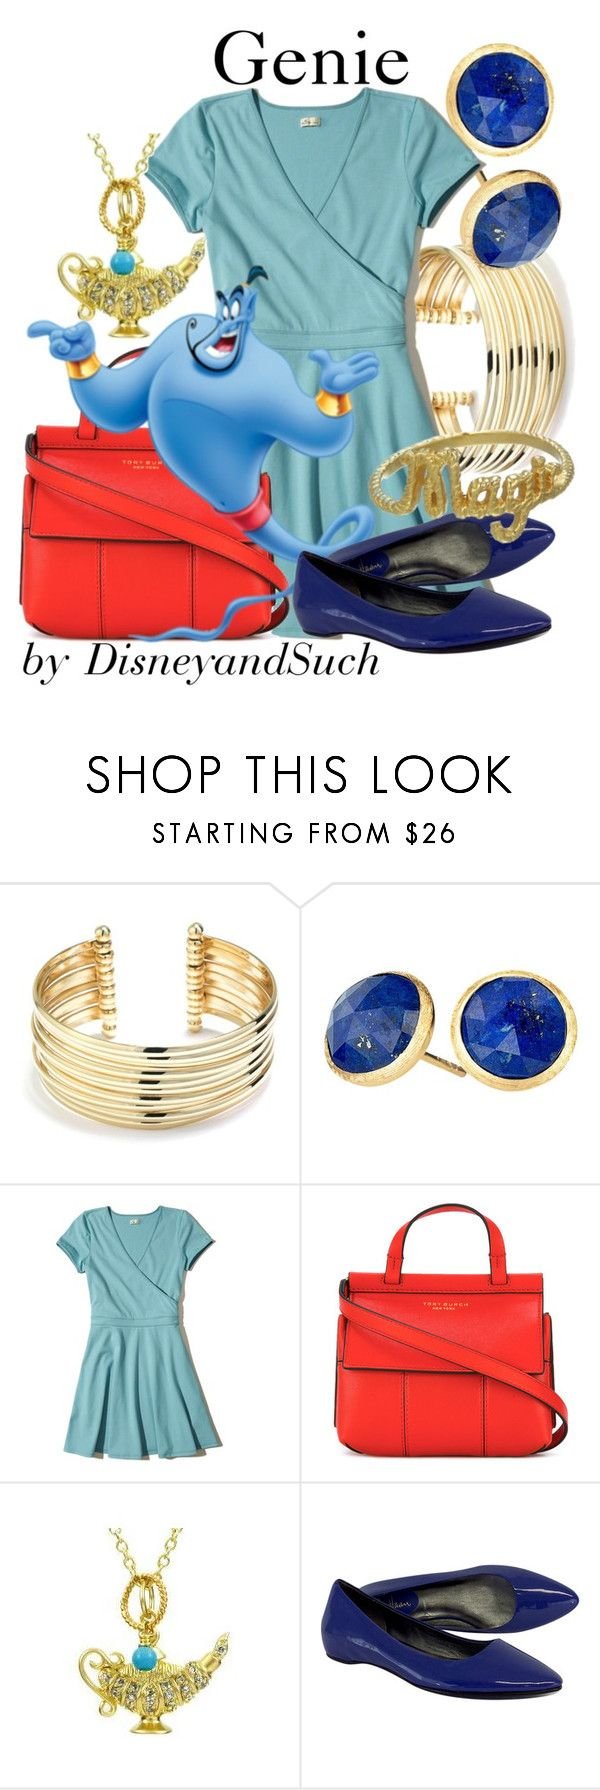 """Genie"" by disneyandsuch ❤ liked on Polyvore featuring Belk Silverworks, Marco Bicego, Hollister Co., Tory Burch, Emitations, Cole Haan, Zoe & Morgan, disney, aladdin and disneybound"